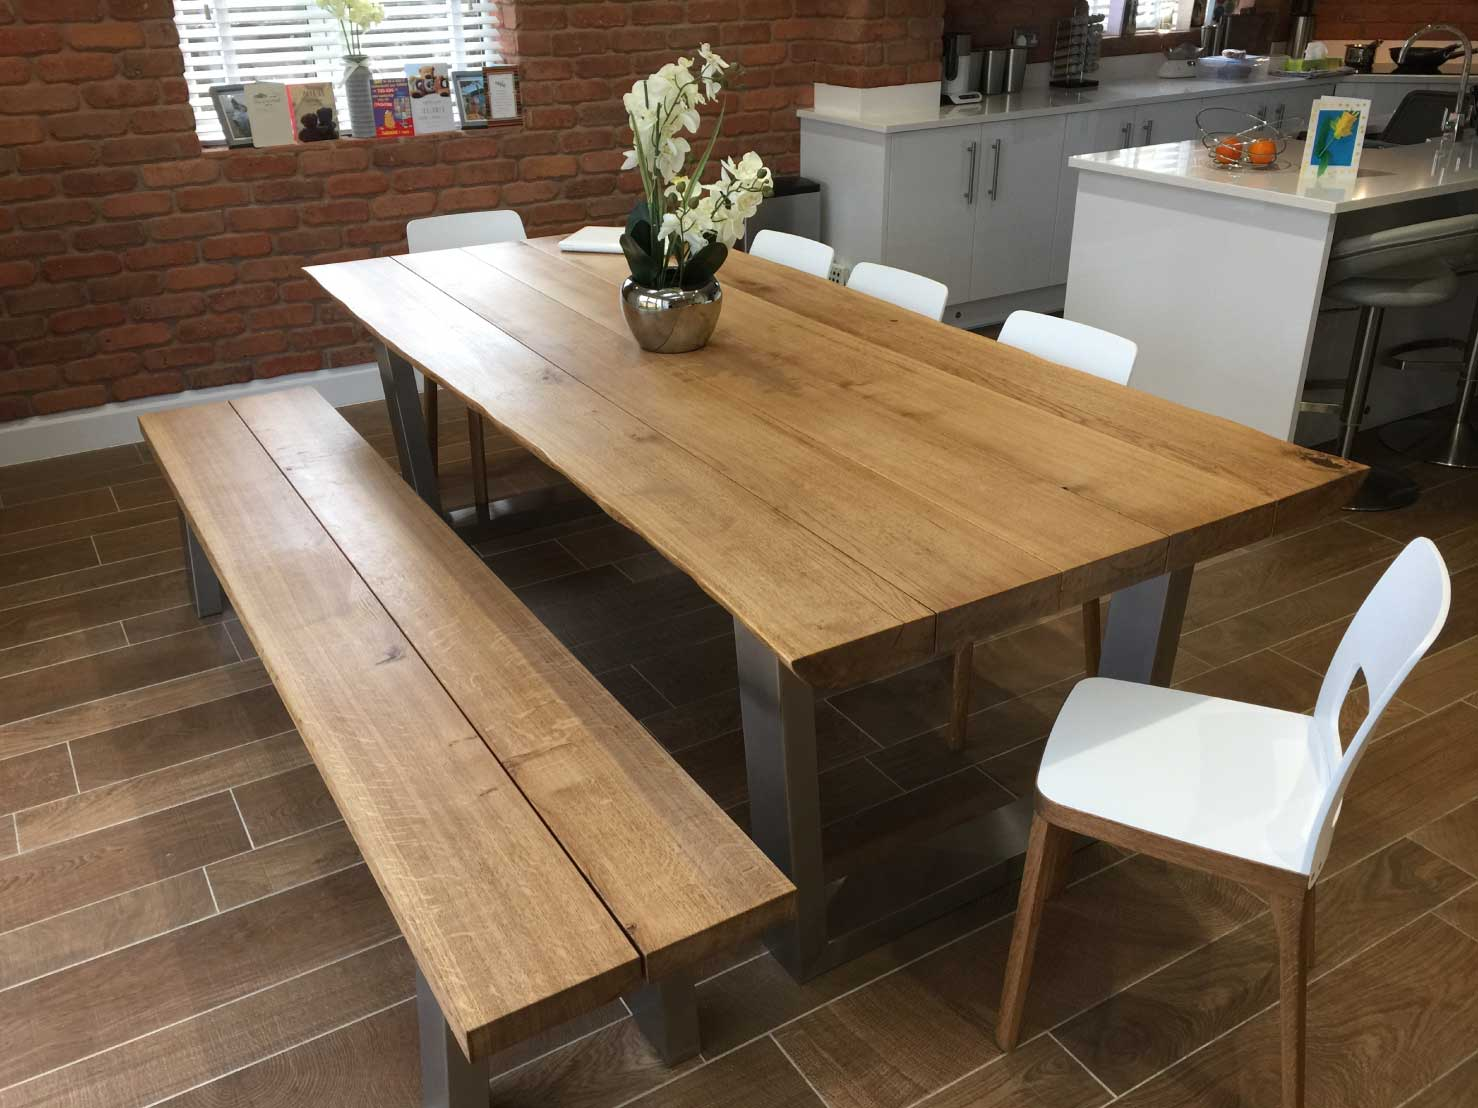 rustic-dining-table-and-chair-set-from-abacus-tables-komodo-2.4m-matching-chairs-&-bench-project-341